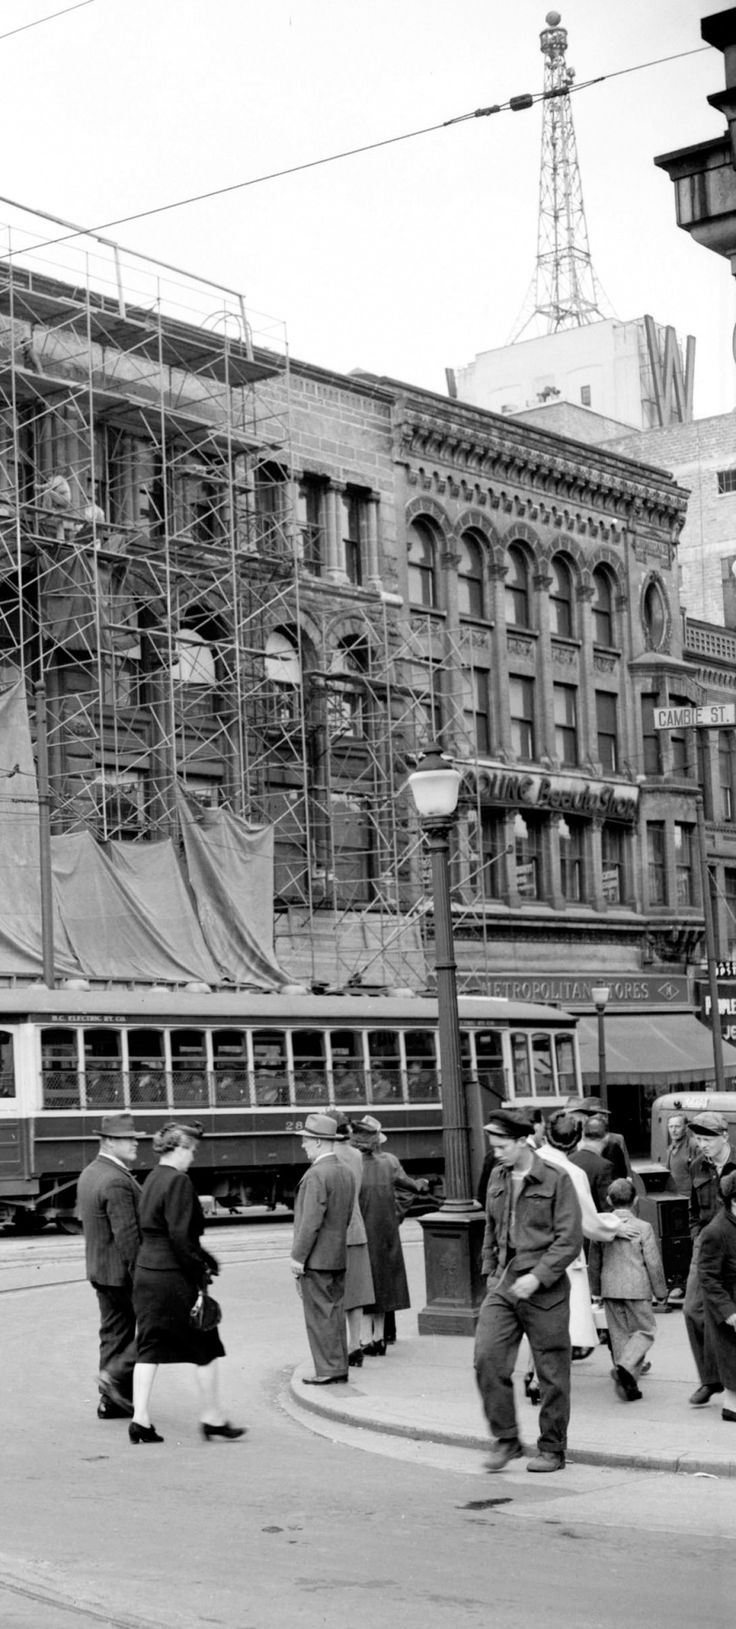 Cambie & West Hastings, ca. 1947 Source: Photo by Jack Lindsay (cropped), City of Vancouver Archives #1184-1928